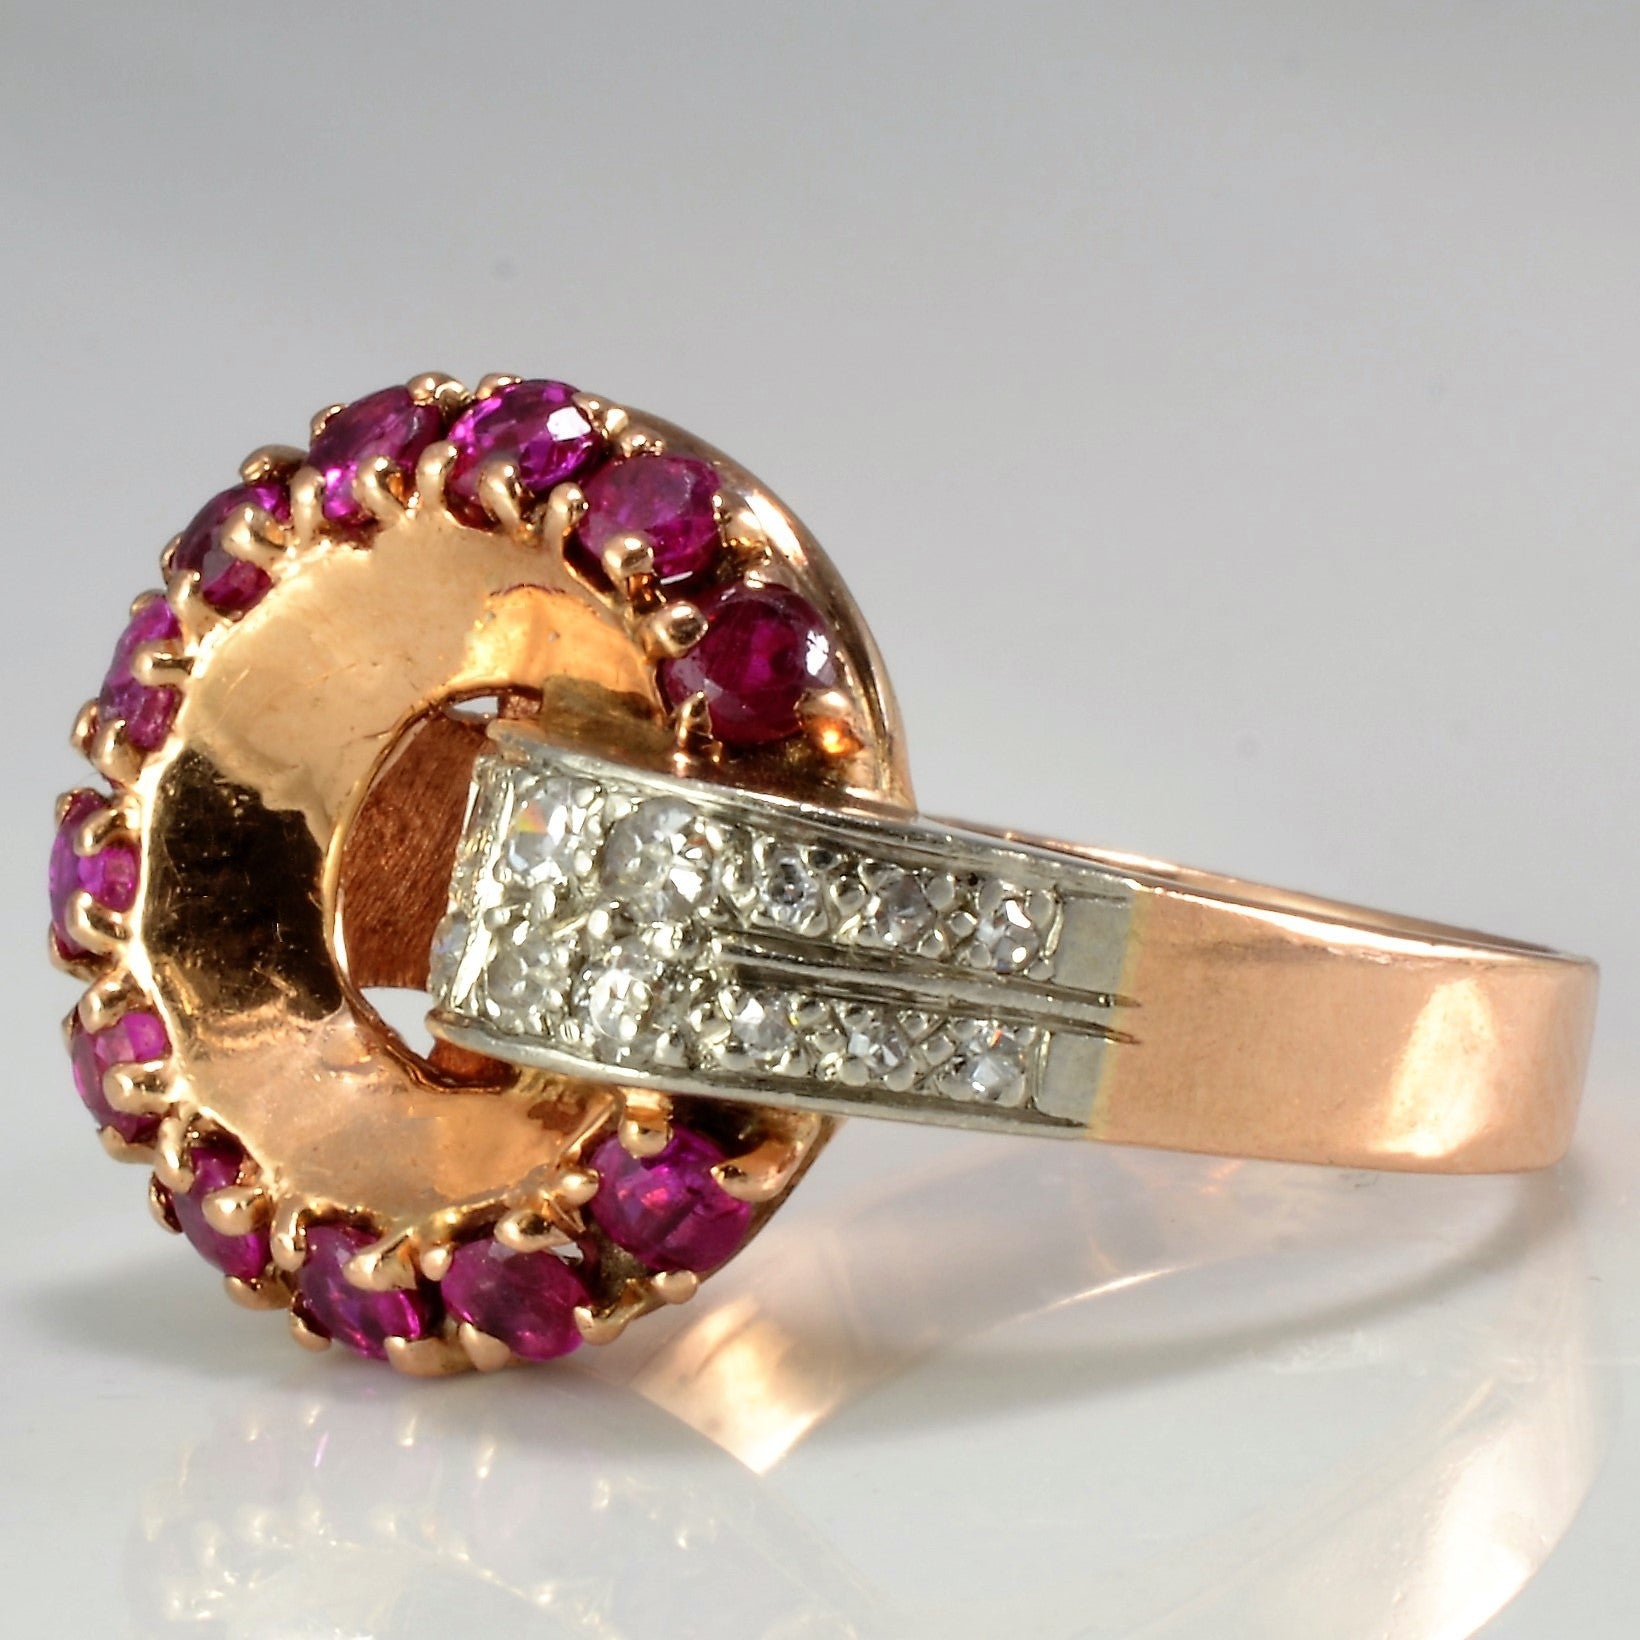 Retro Rose Gold Ruby & Diamond Ring | 0.20 ctw, SZ 5.75 |